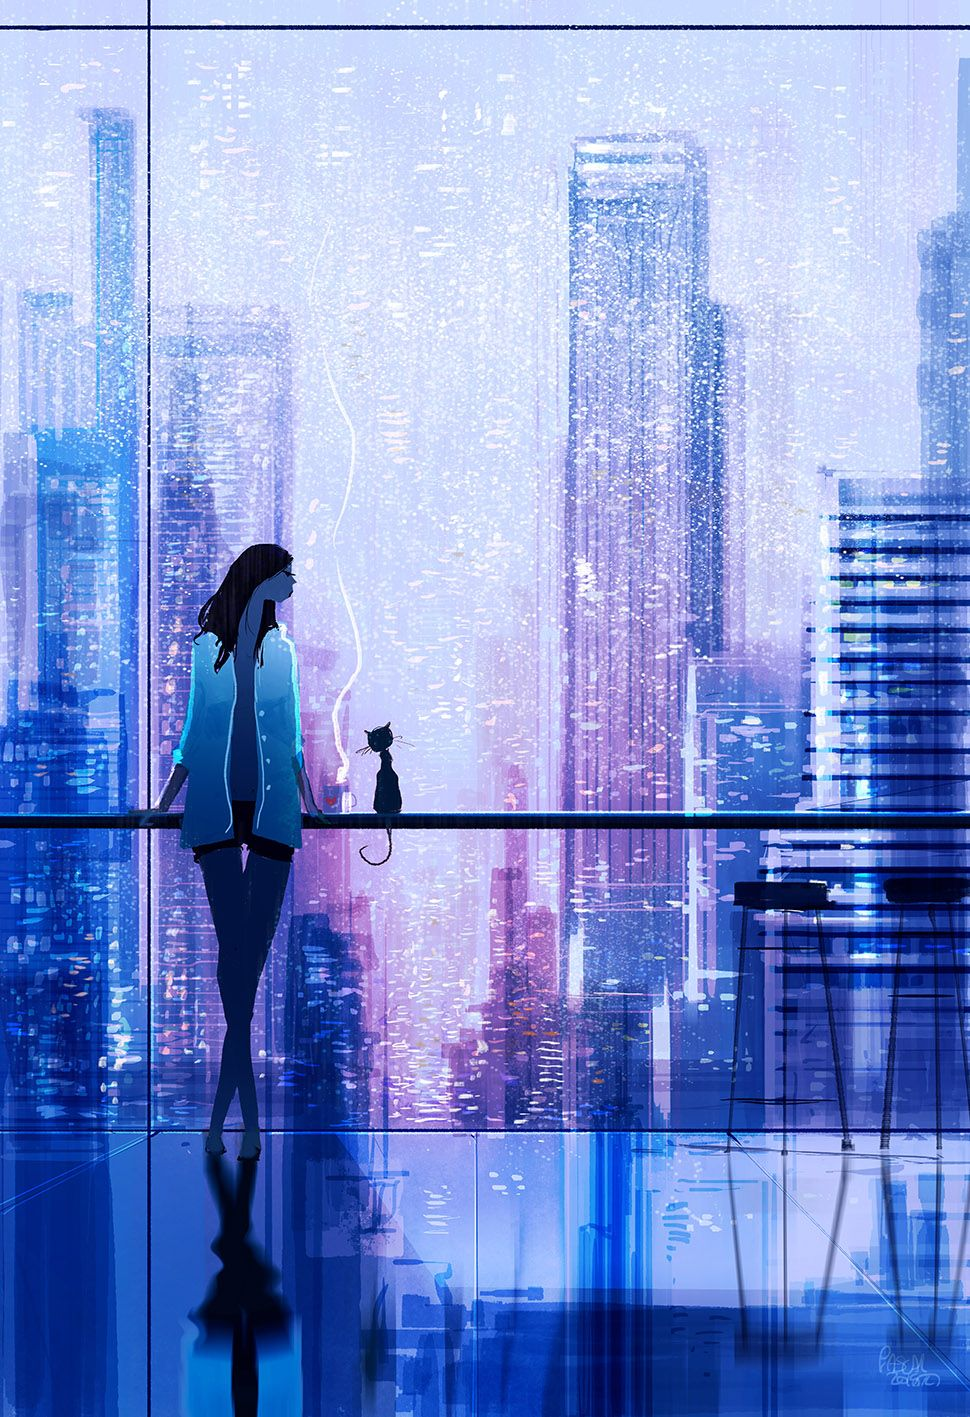 Rainy view pascalcampionart kind of a follow up to a piece called